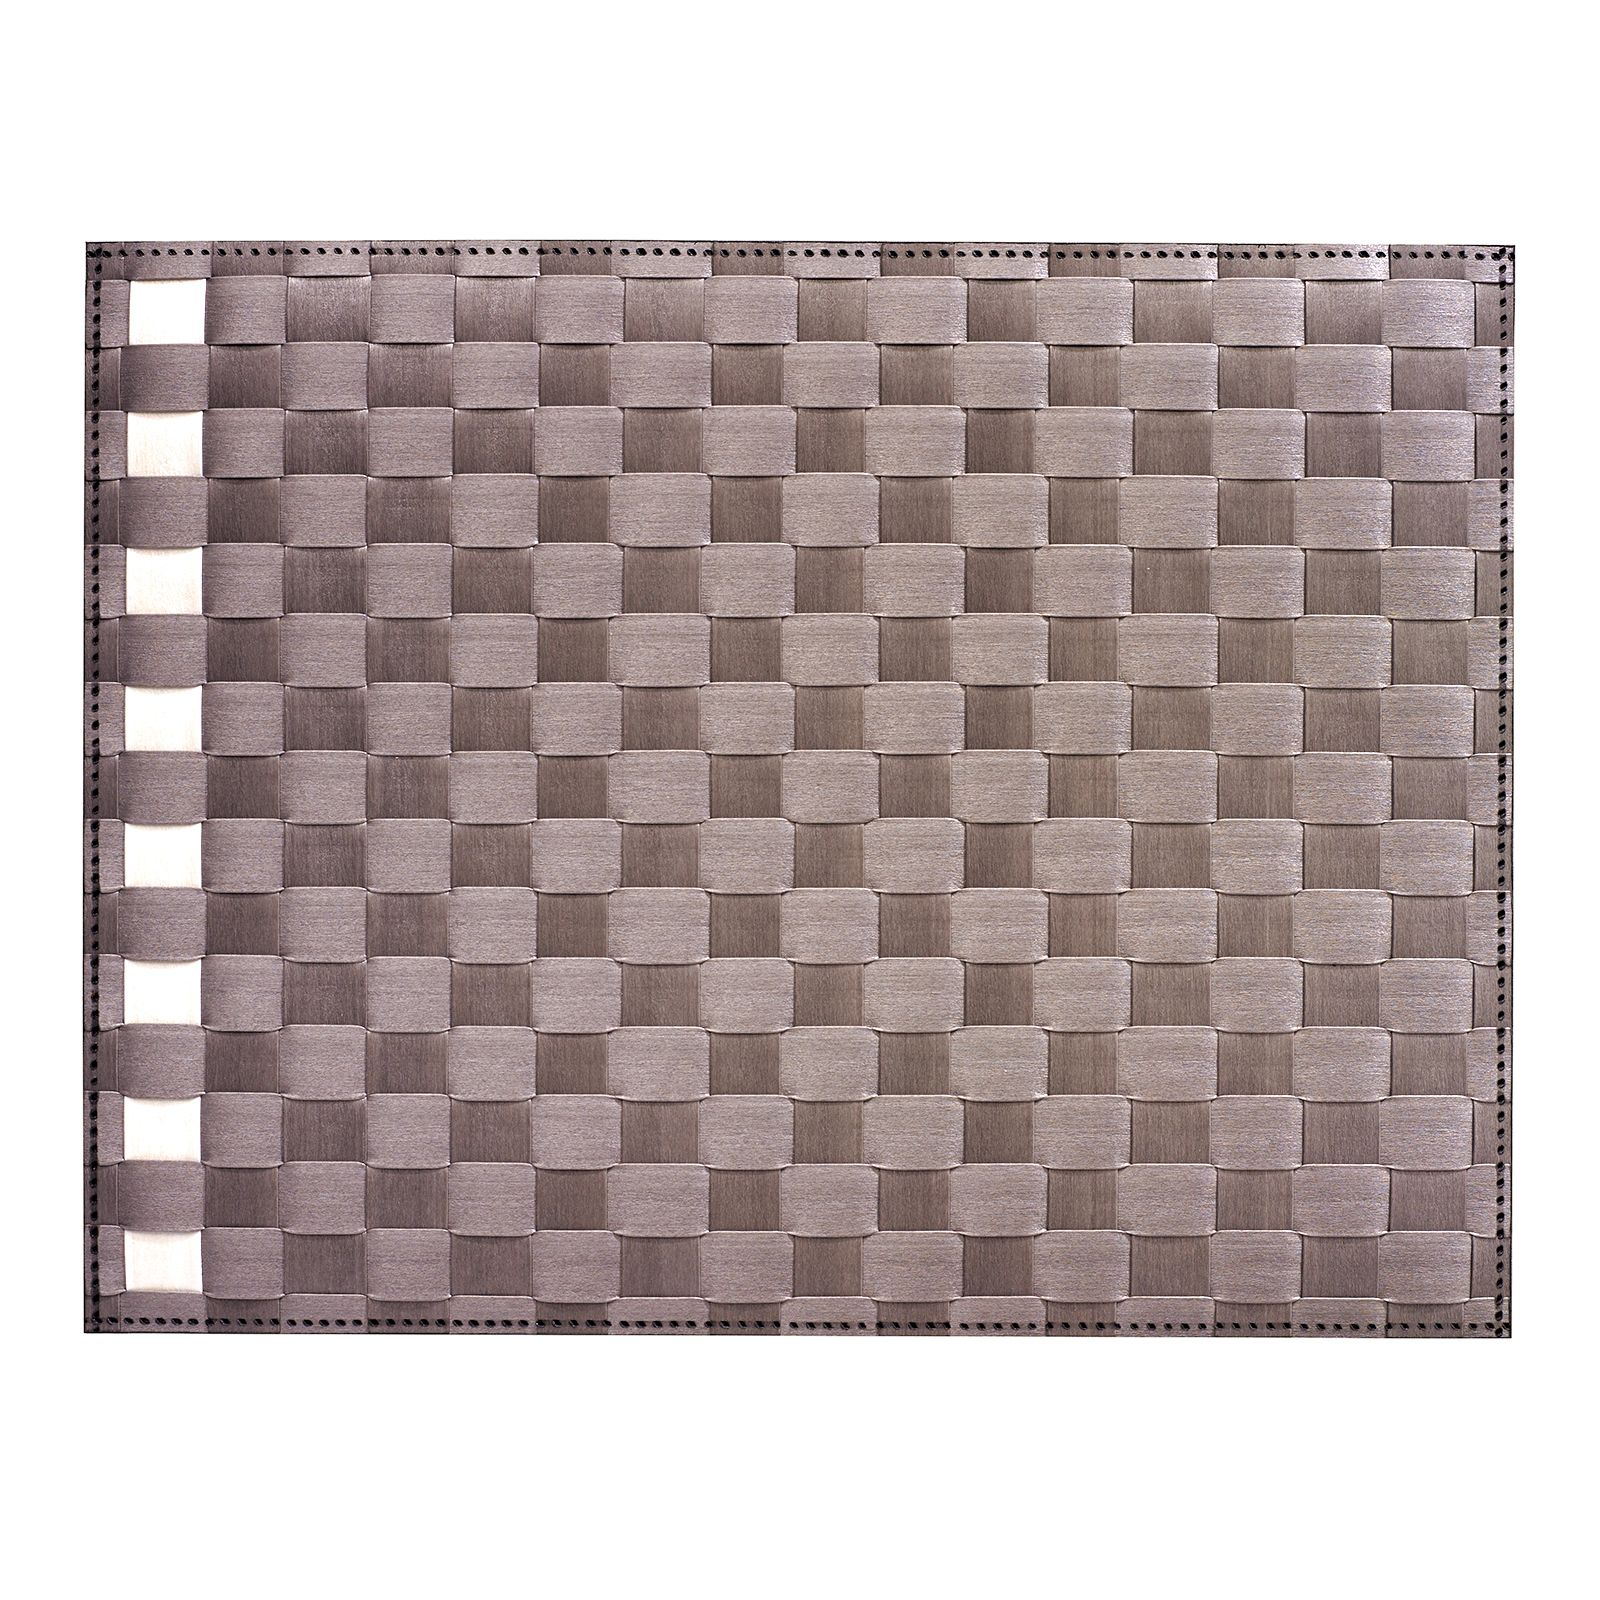 Saleen Placemat - Simplicity - Taupe+Ivory